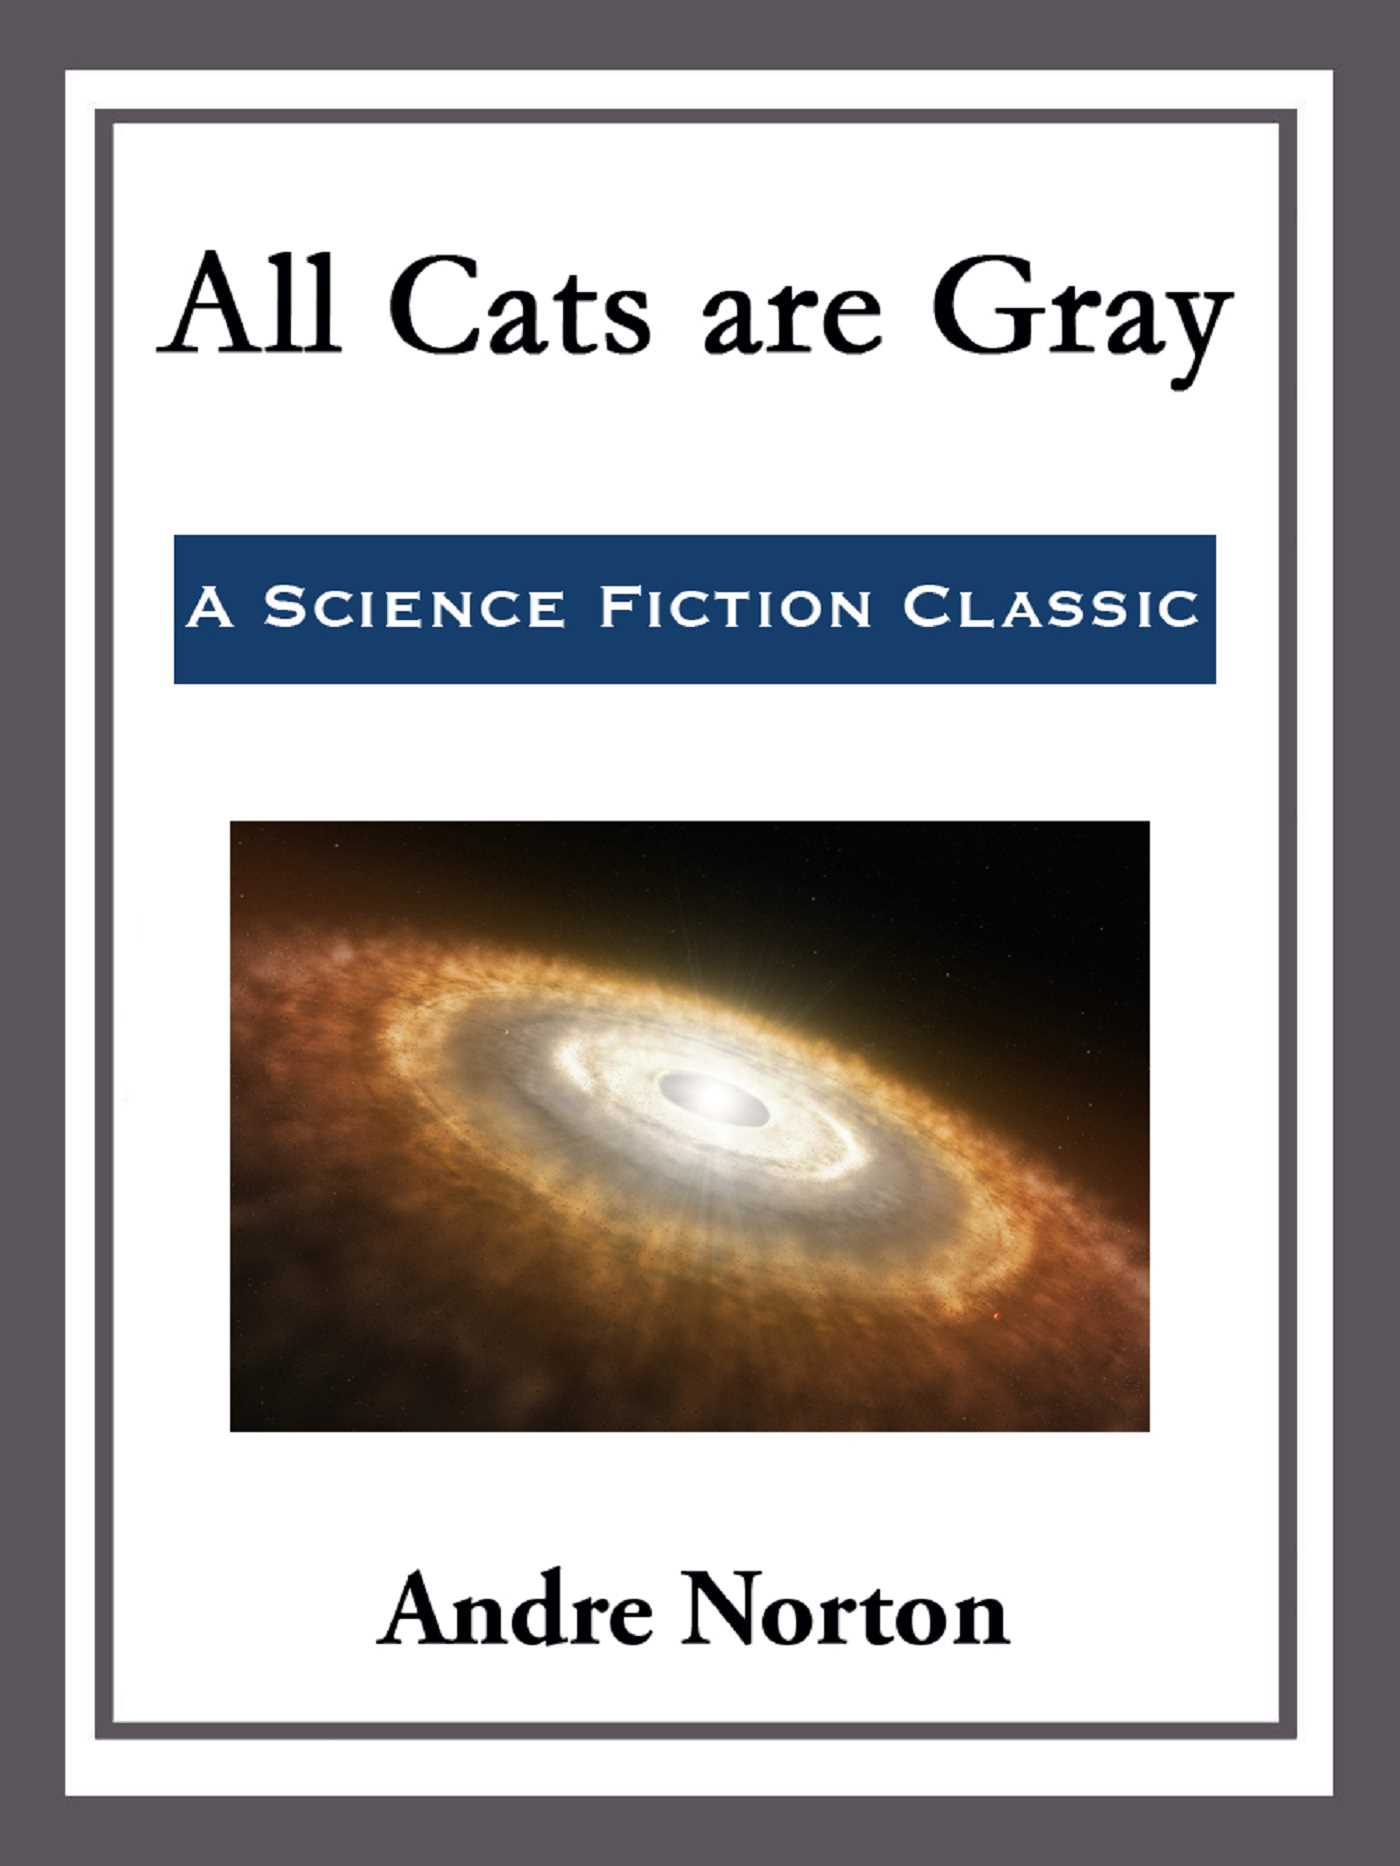 All cats are gray 9781682991787 hr